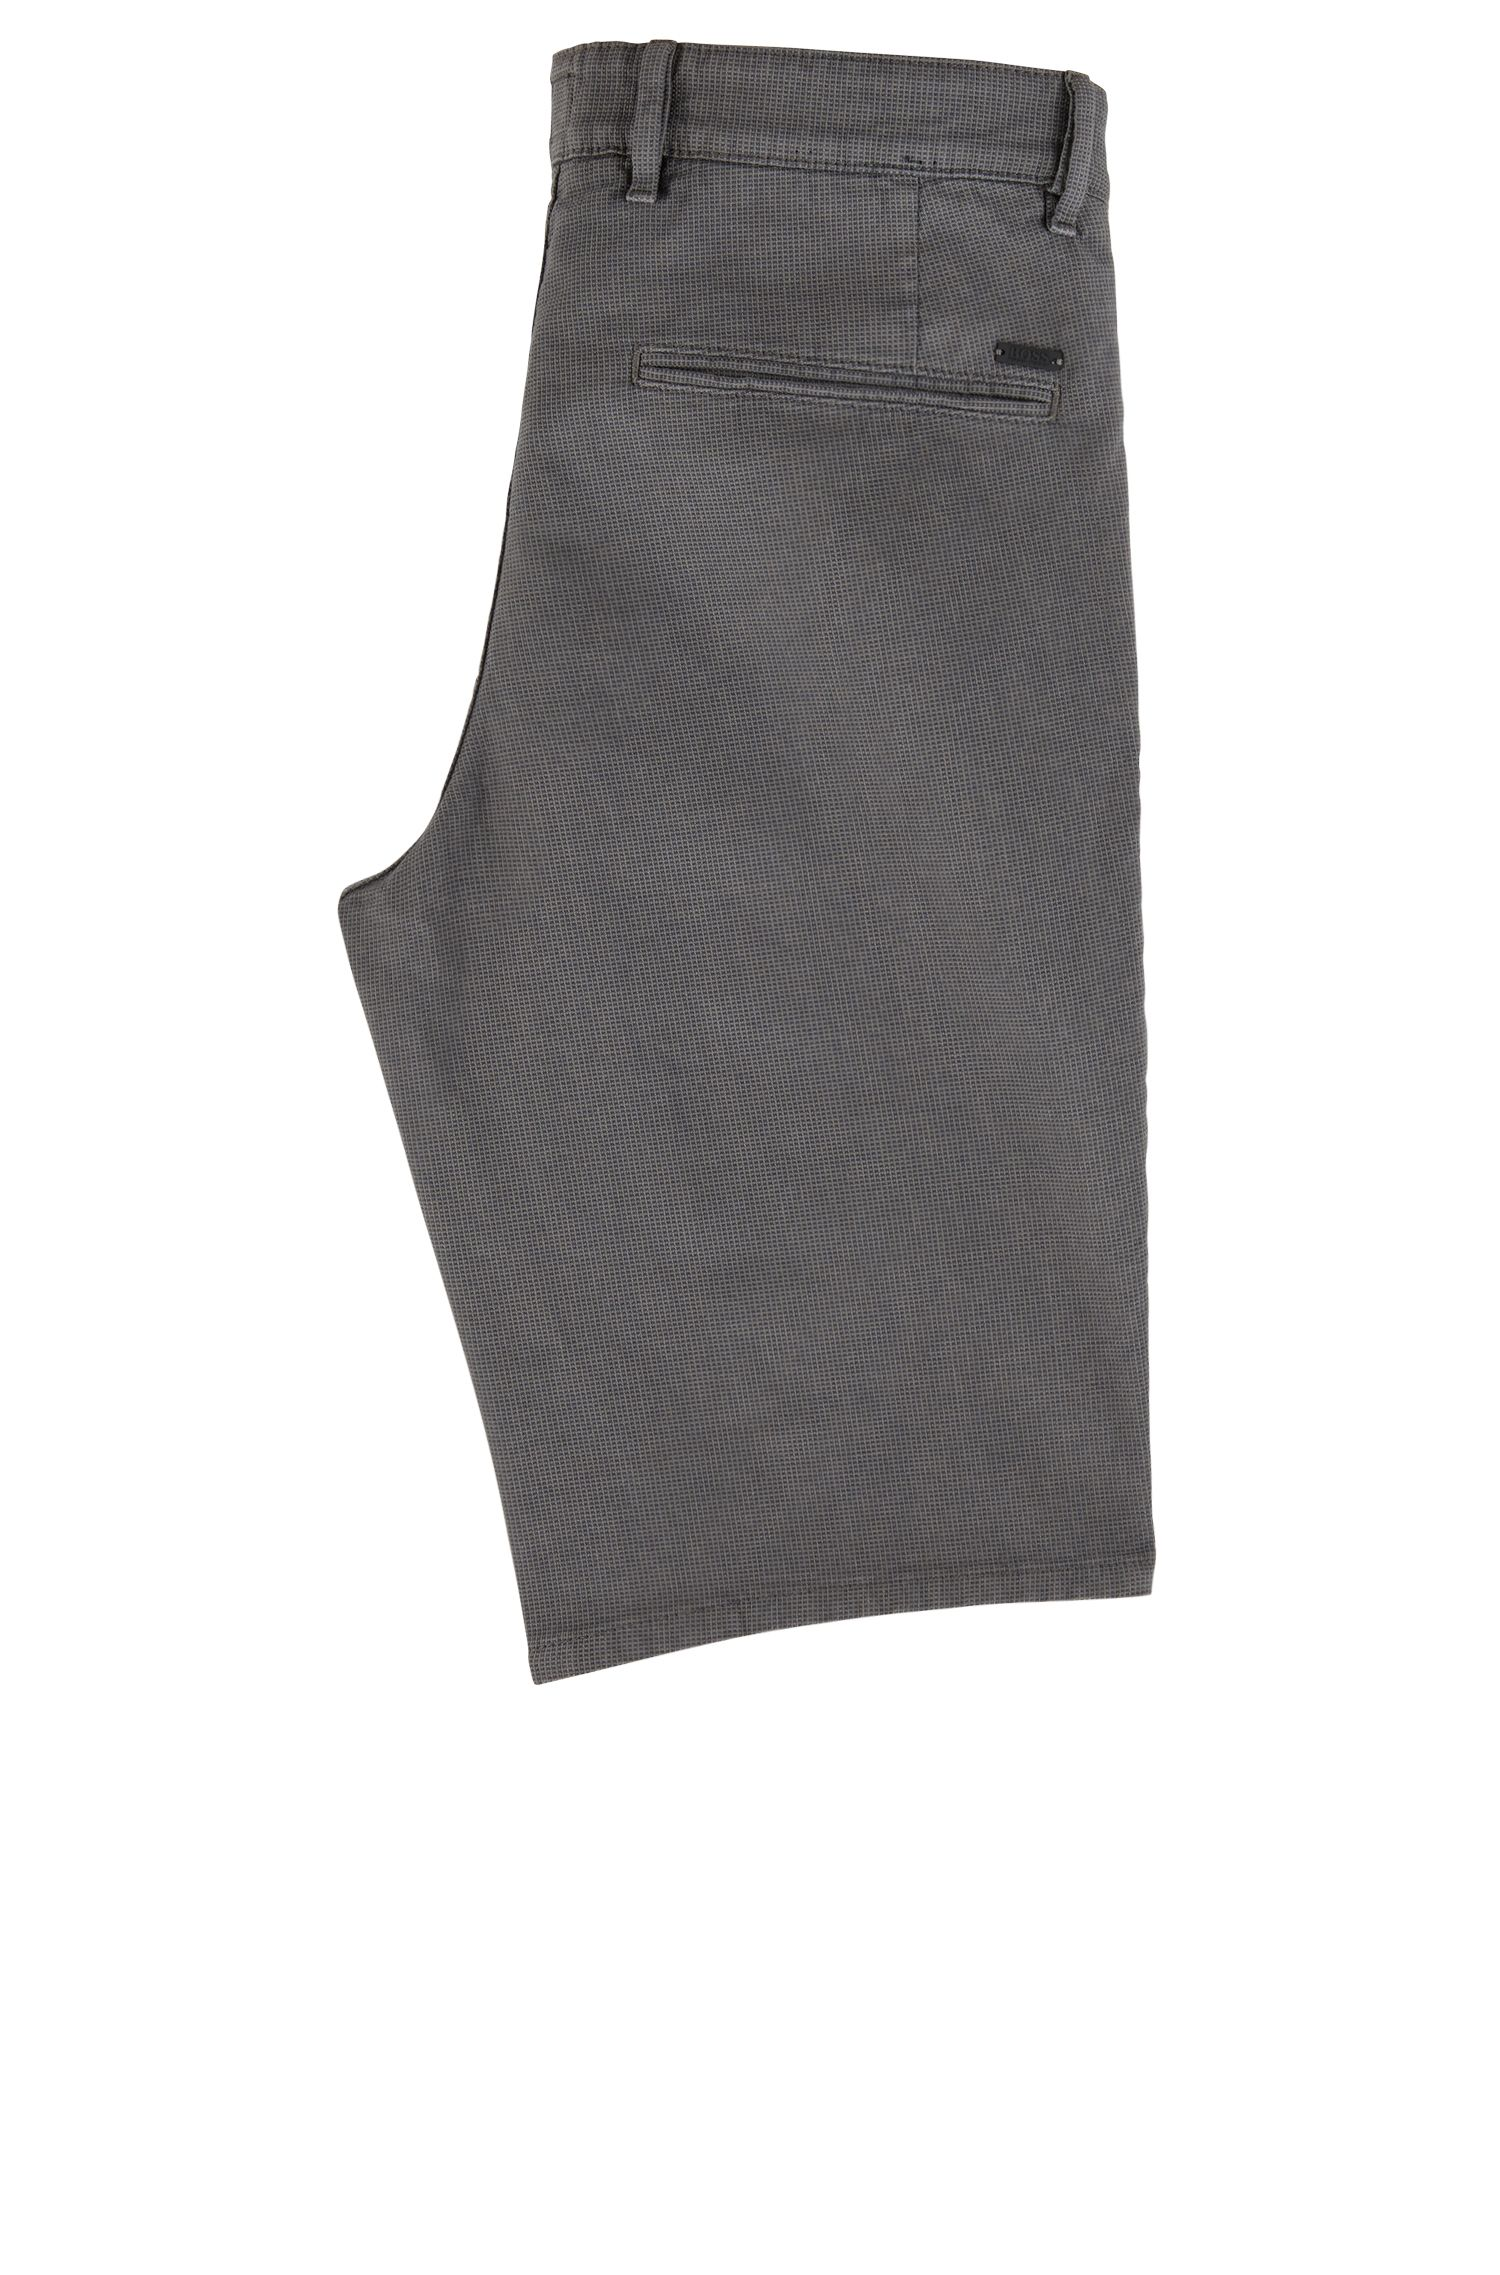 Short chino Slim Fit en coton stretch structuré, Anthracite